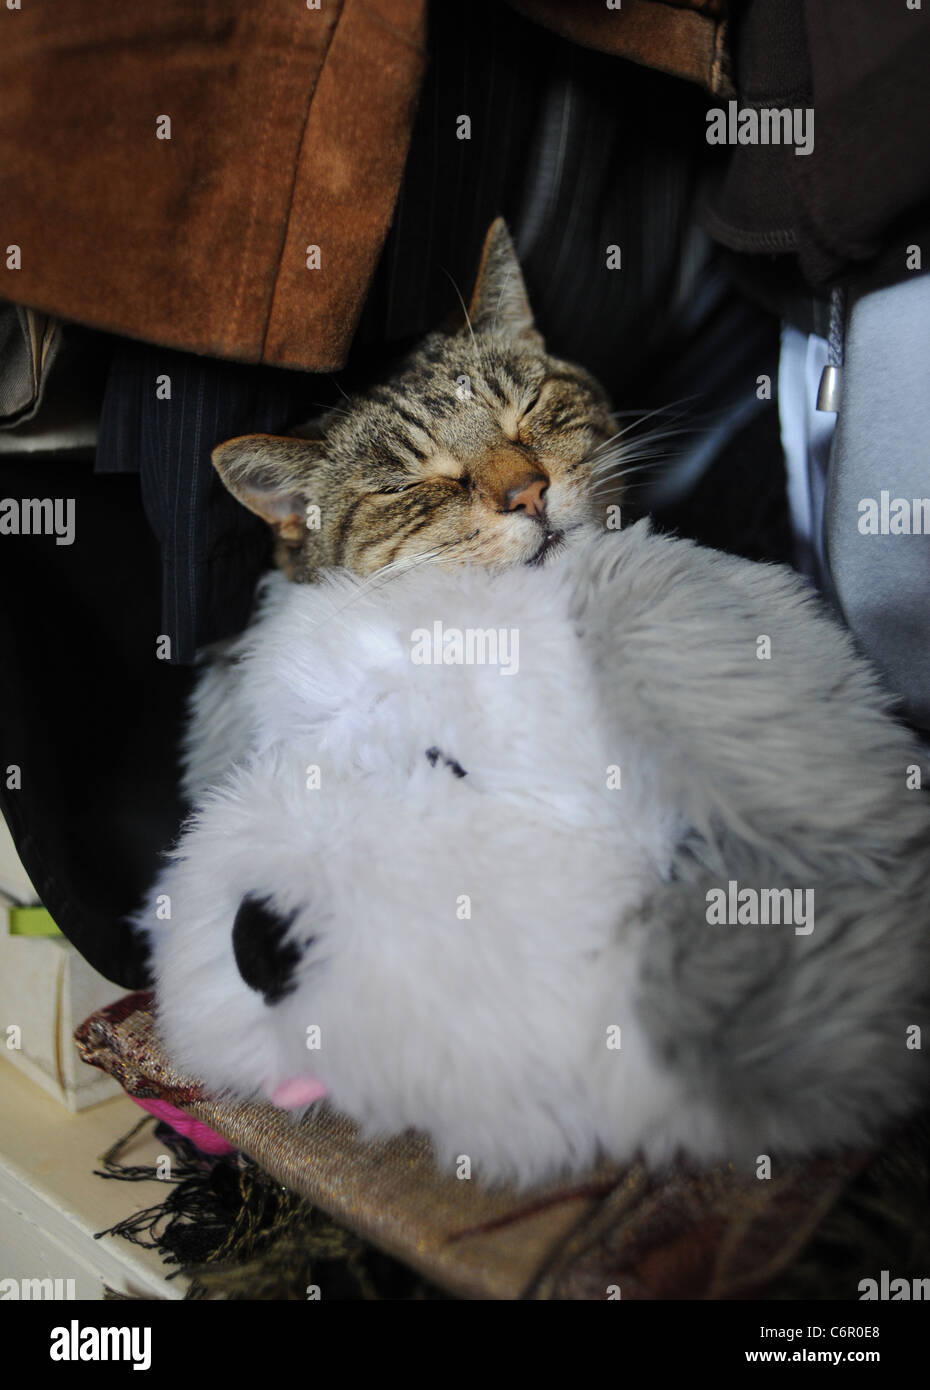 Fluffy cat toy stock photos fluffy cat toy stock images for Fluffy cat toy